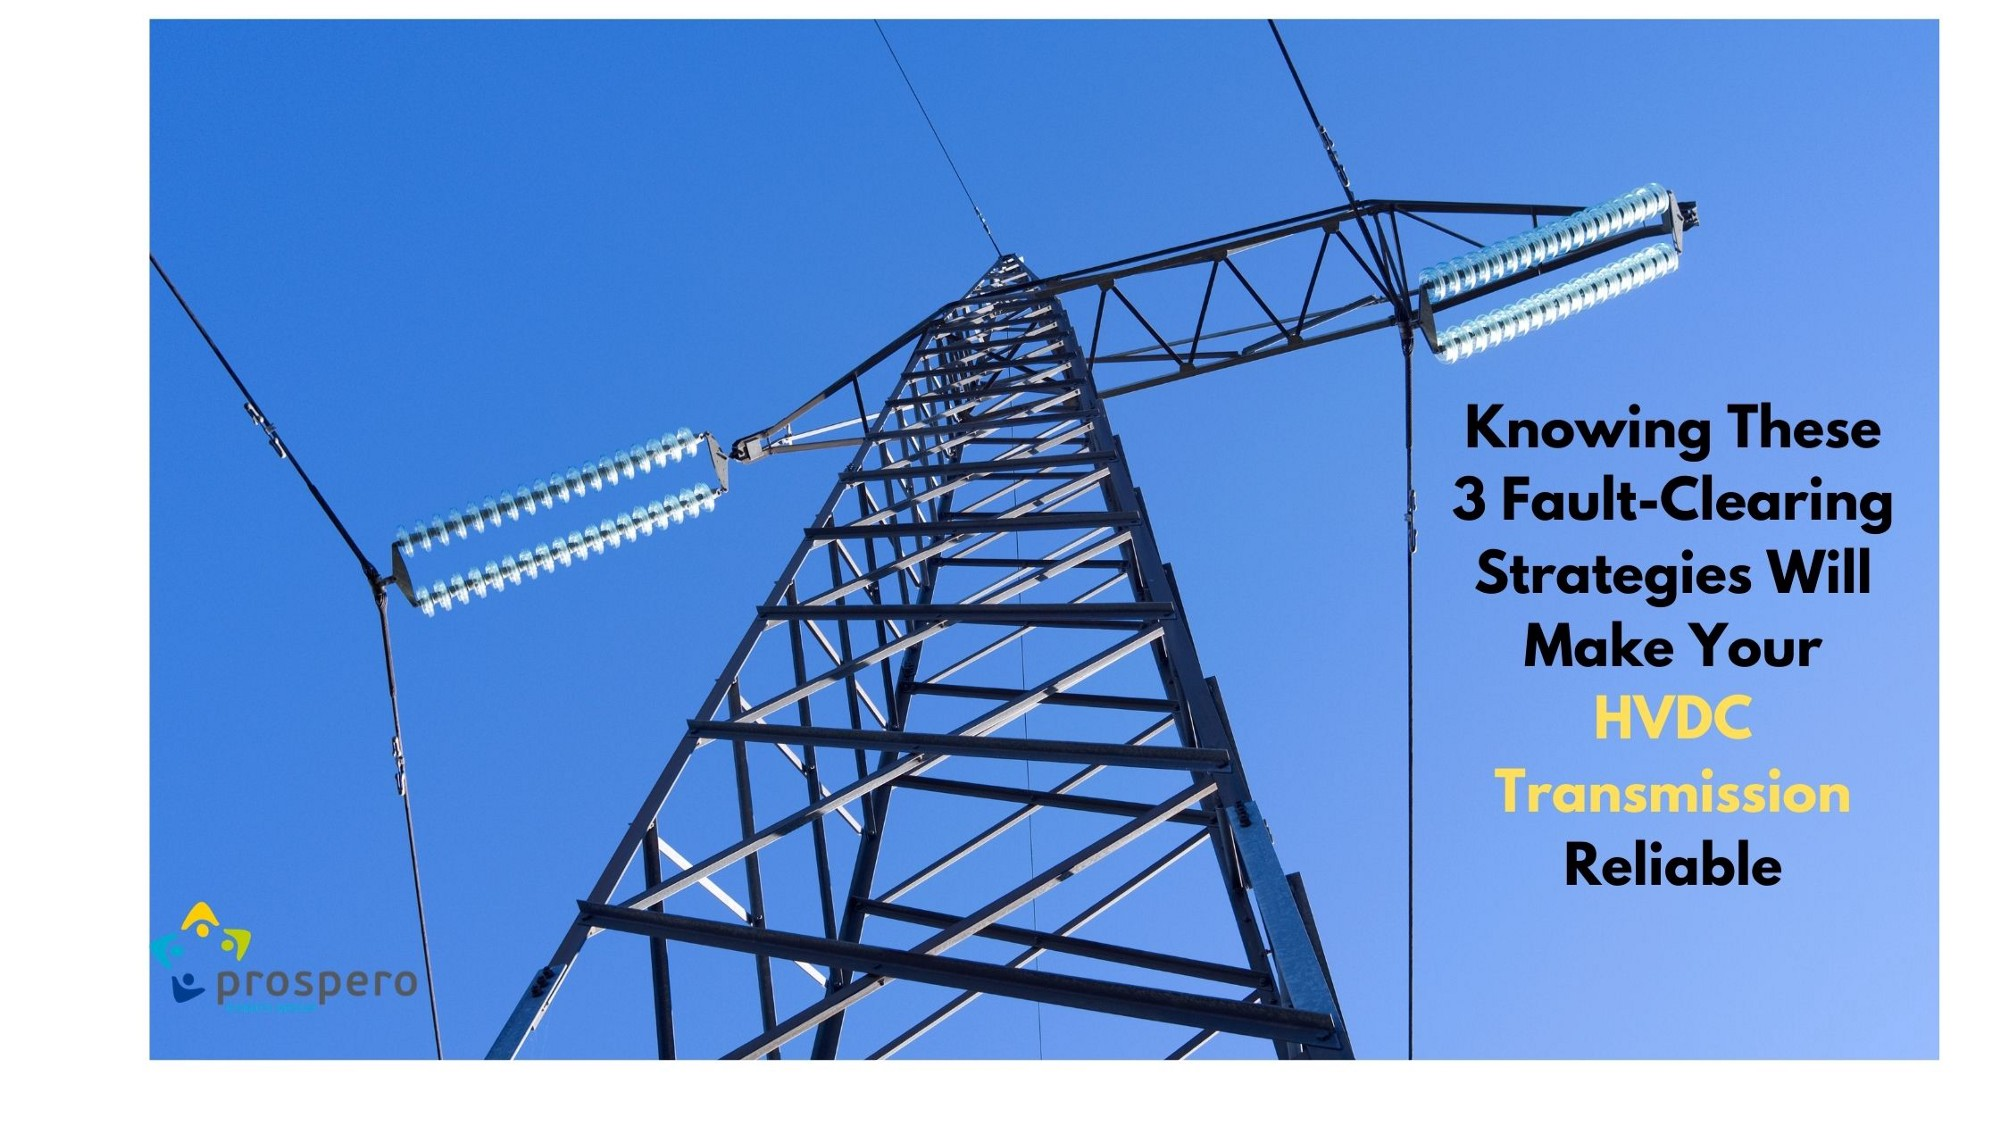 The future of bulk long-distance power transmission looks HVDC due to recent technological advancements.